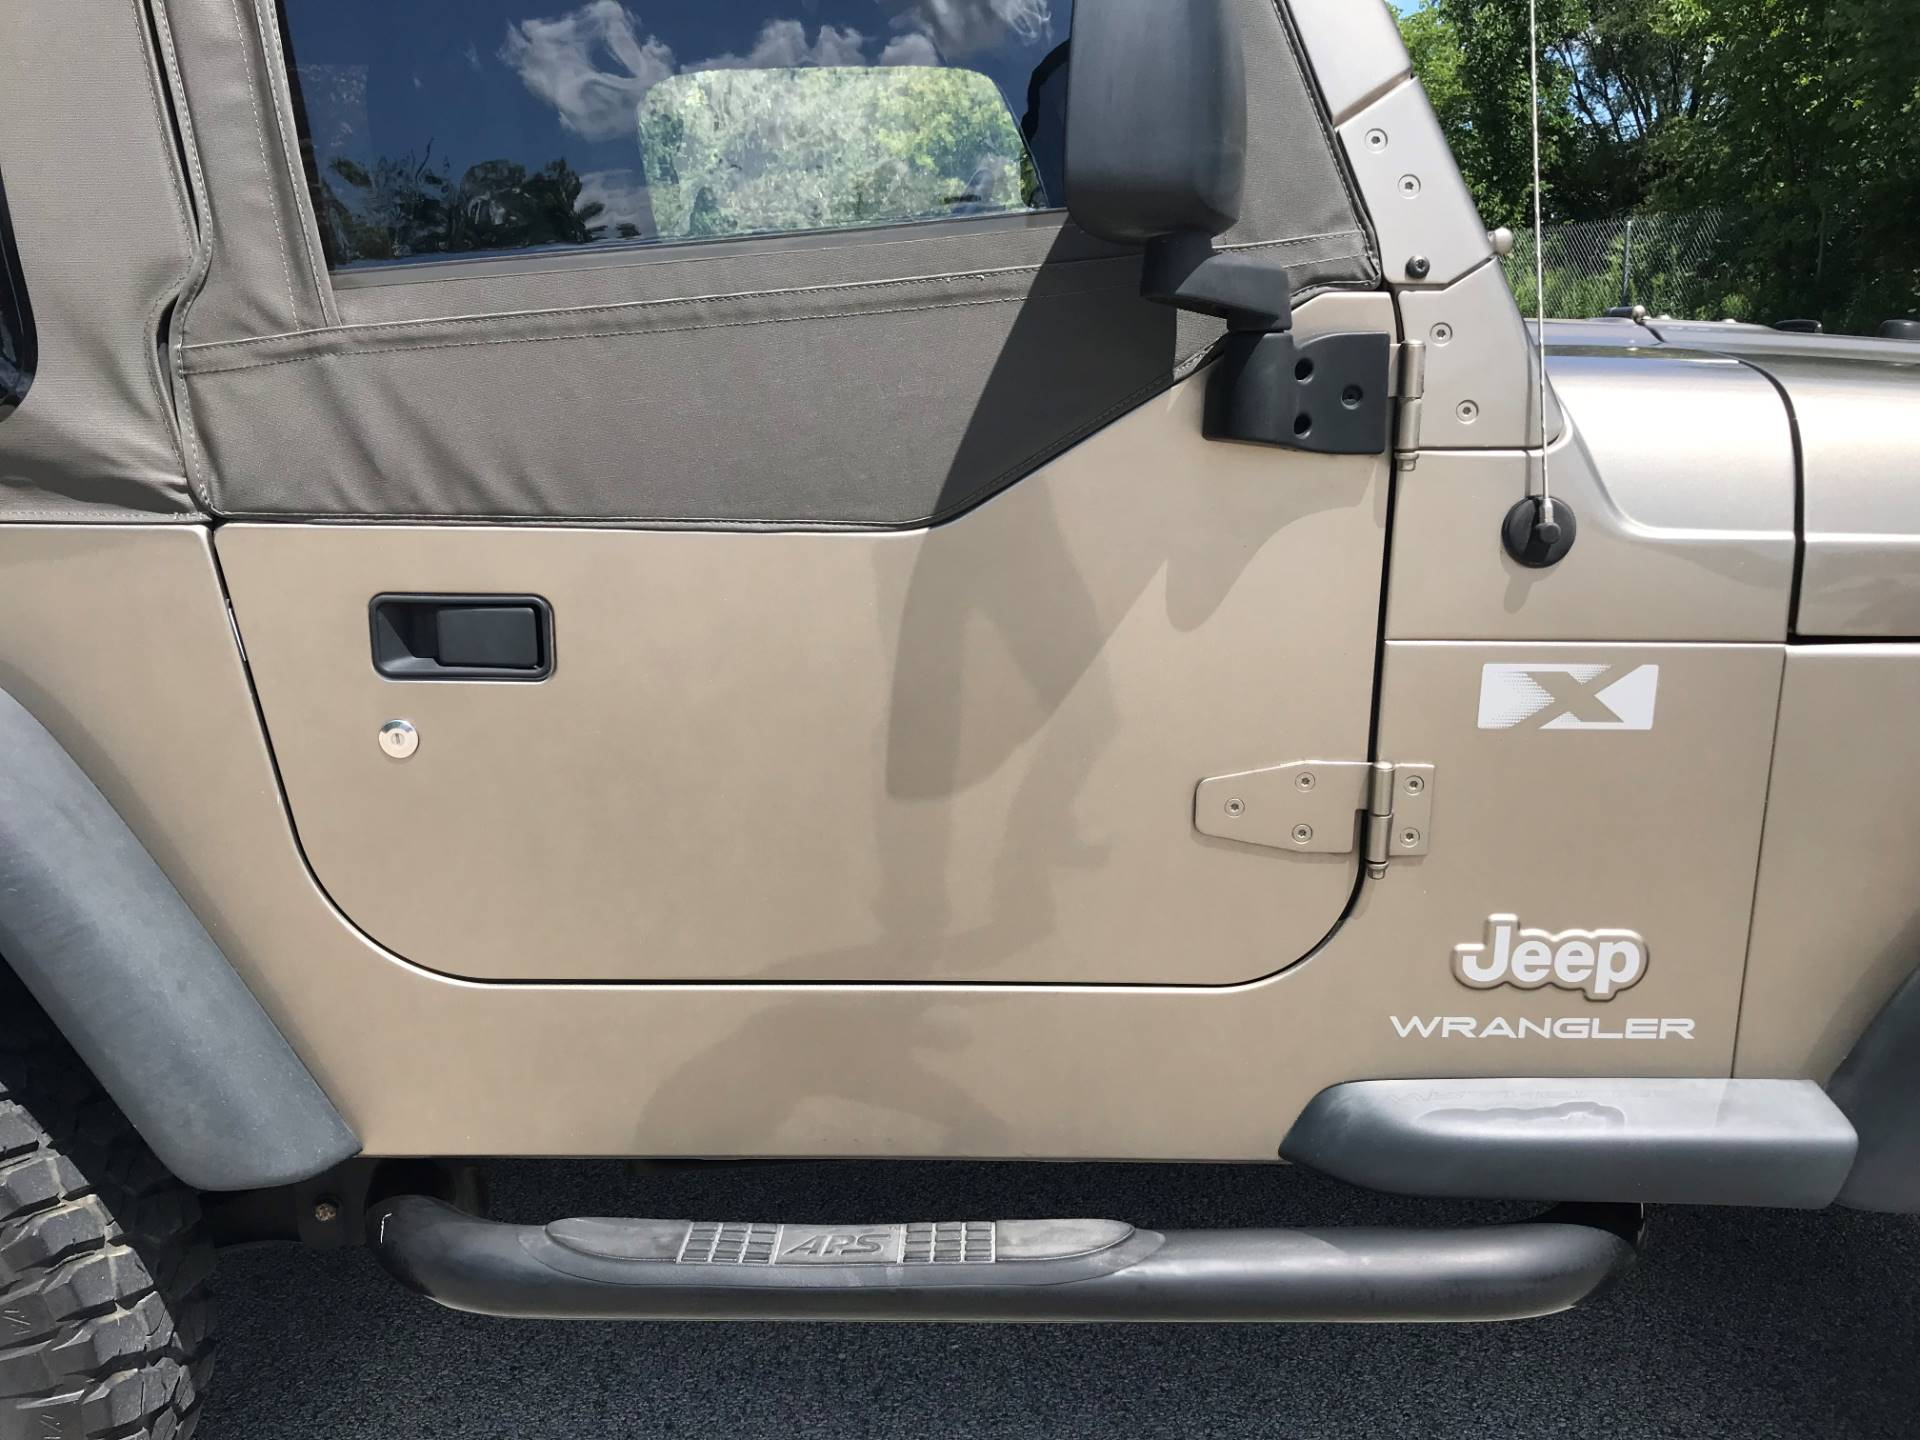 2004 Jeep Wrangler X in Big Bend, Wisconsin - Photo 6